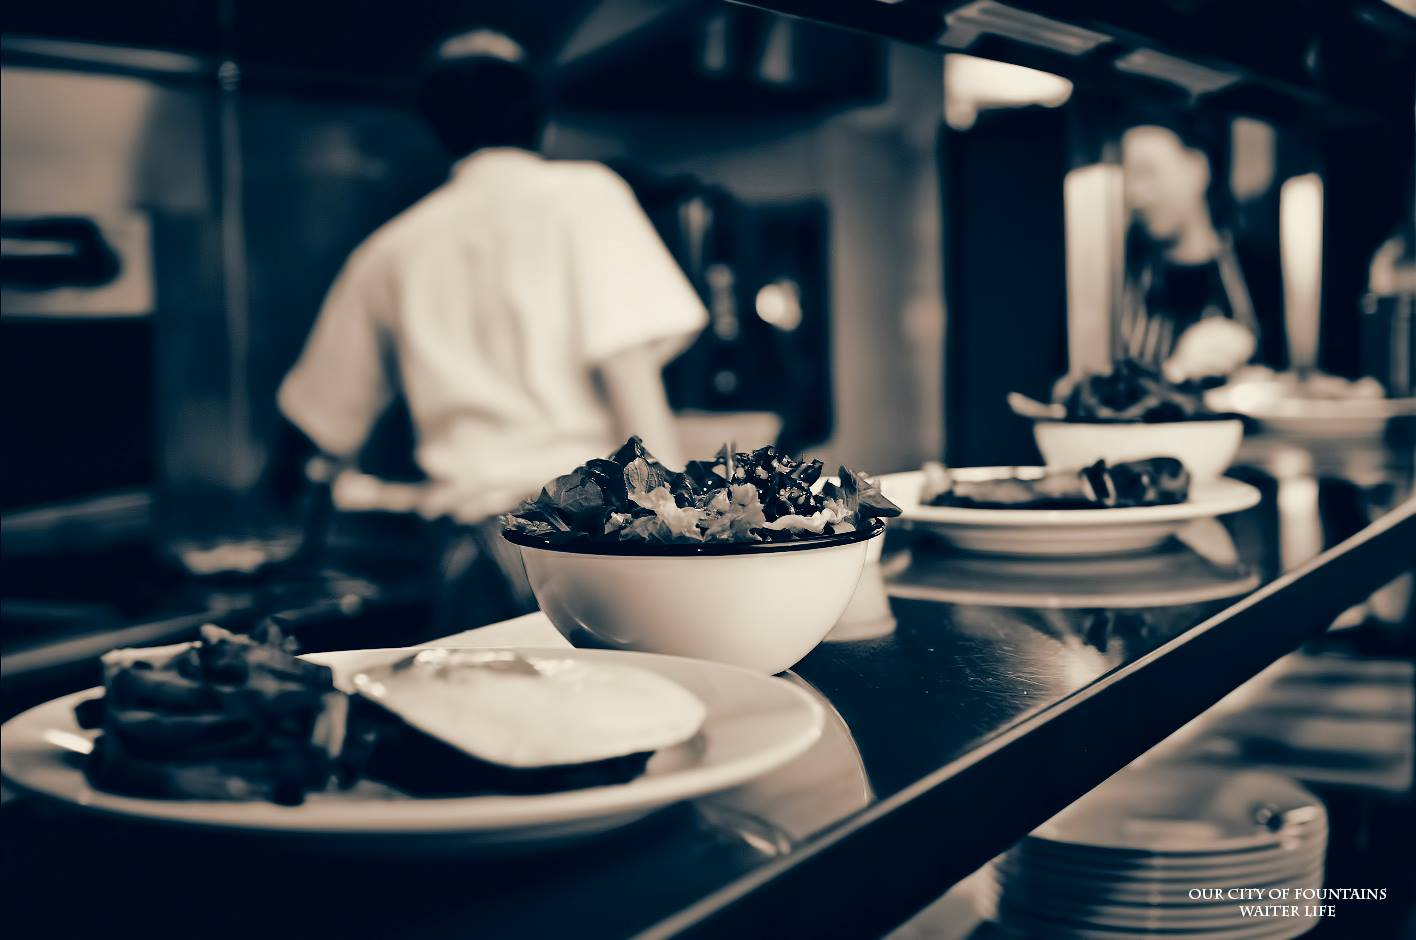 """According to some online sources, the average waiter at a restaurant in 2016 makes about $5.01 an hour in the United States. Like most states however, a server here in Columbus, Georgia only makes $2.13 an hour plus tips. Most restaurants also mandate their wait staff to tip out their bartenders, food runners, sometimes food expediters and """"bussers"""", which means some servers bring in around 70% of  their daily cash tips. In this city, one of the things we know best is food. It's amazing to me that a $4.2 billion dollar a year industry has guidelines that to most...seem a bit outdated when it comes to the fairness of employee wage. According to the United States Department of Labor, The Fair Labor Standards Act (FLSA) requires payment of at least the Federal minimum wage to be covered for nonexempt employees.  If this concept is new to you, I encourage you try to follow this closely. Non-exempt is the more exact way of saying you are an hourly employee who is entitled to overtime when you work over 40 hours, and need to take leave for any hour you are out. It also means you are not in a management position--those are usually exempt. An employer of a tipped employee is only required to pay $2.13 an hour in direct wages if that amount plus the tips received equals at least the Federal minimum wage, the employee retains all tips and the employee customarily and regularly receives more than $30 a month in tips. If an employee's tips combined with the employer's direct wages of at least $2.13 an hour DO NOT equal the Federal minimum hourly wage, the employer must make up the difference. If the employer doesn't...well...they're breaking the law.  This week I dive into the lives of individuals working in a world I have known for over fifteen years; the restaurant industry. It is a world that certainly isn't for everyone. Many arguments exist when the subject of server wage is discussed. Some see waiting tables as a summer job for college kids, while others make it a living,"""